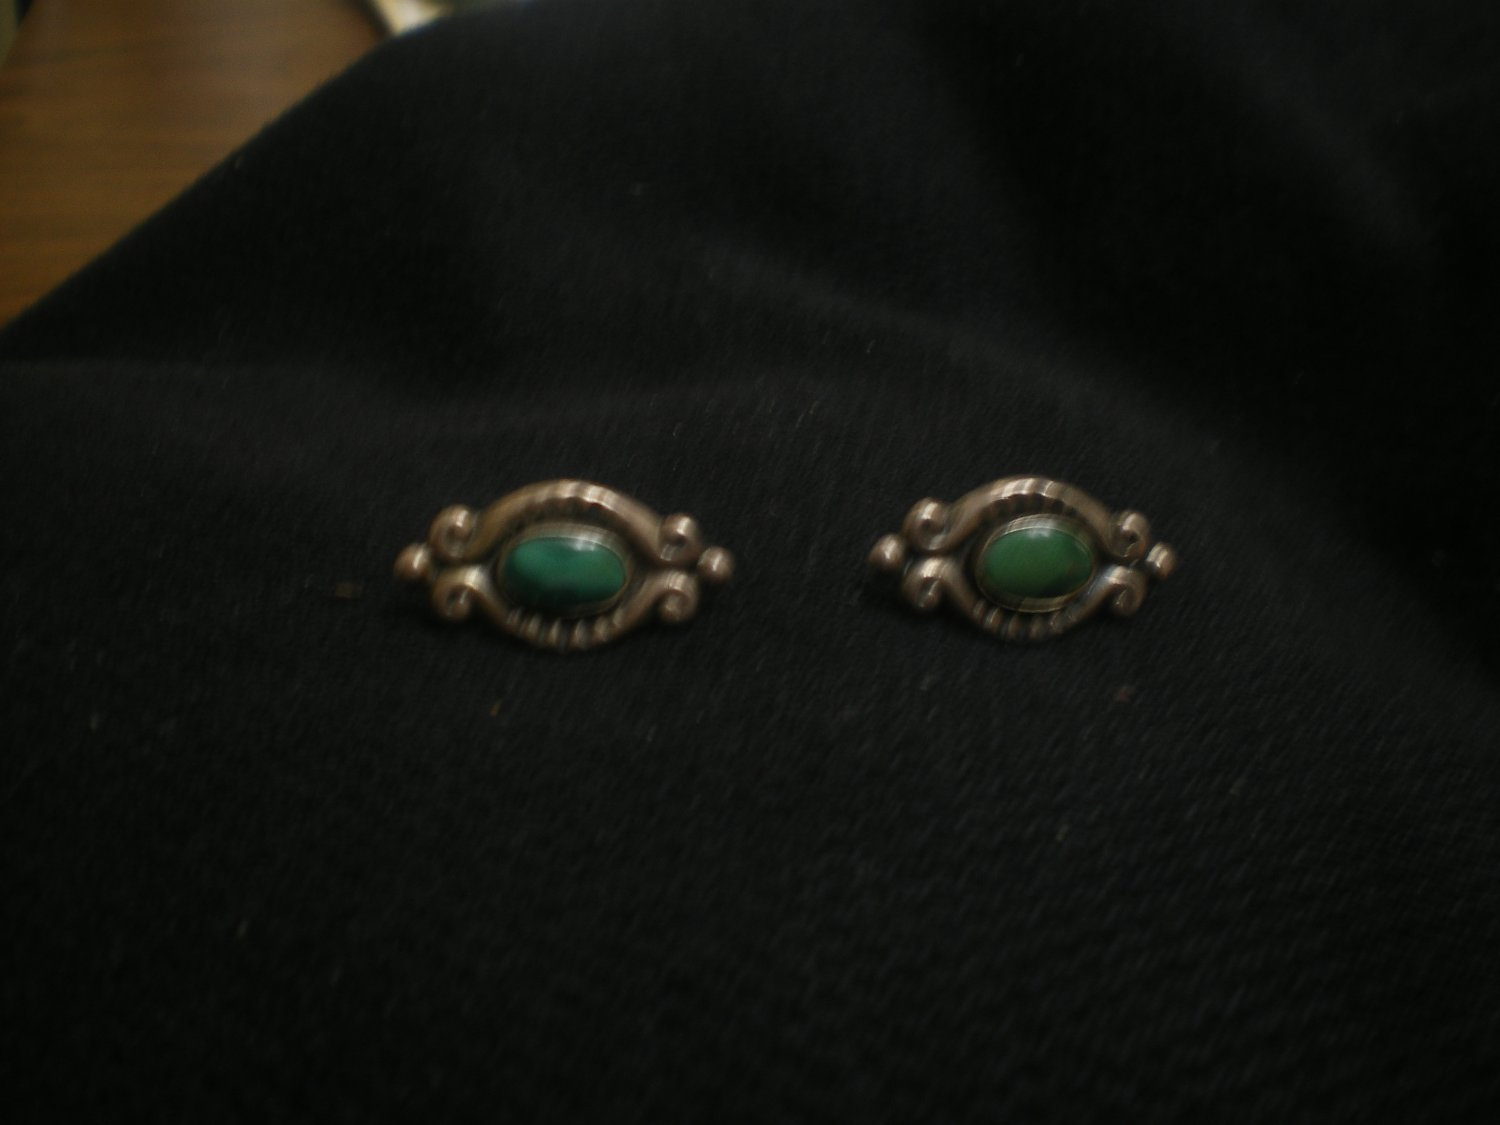 4.7 gram sterling silver ear ring set with oval turquoise stone